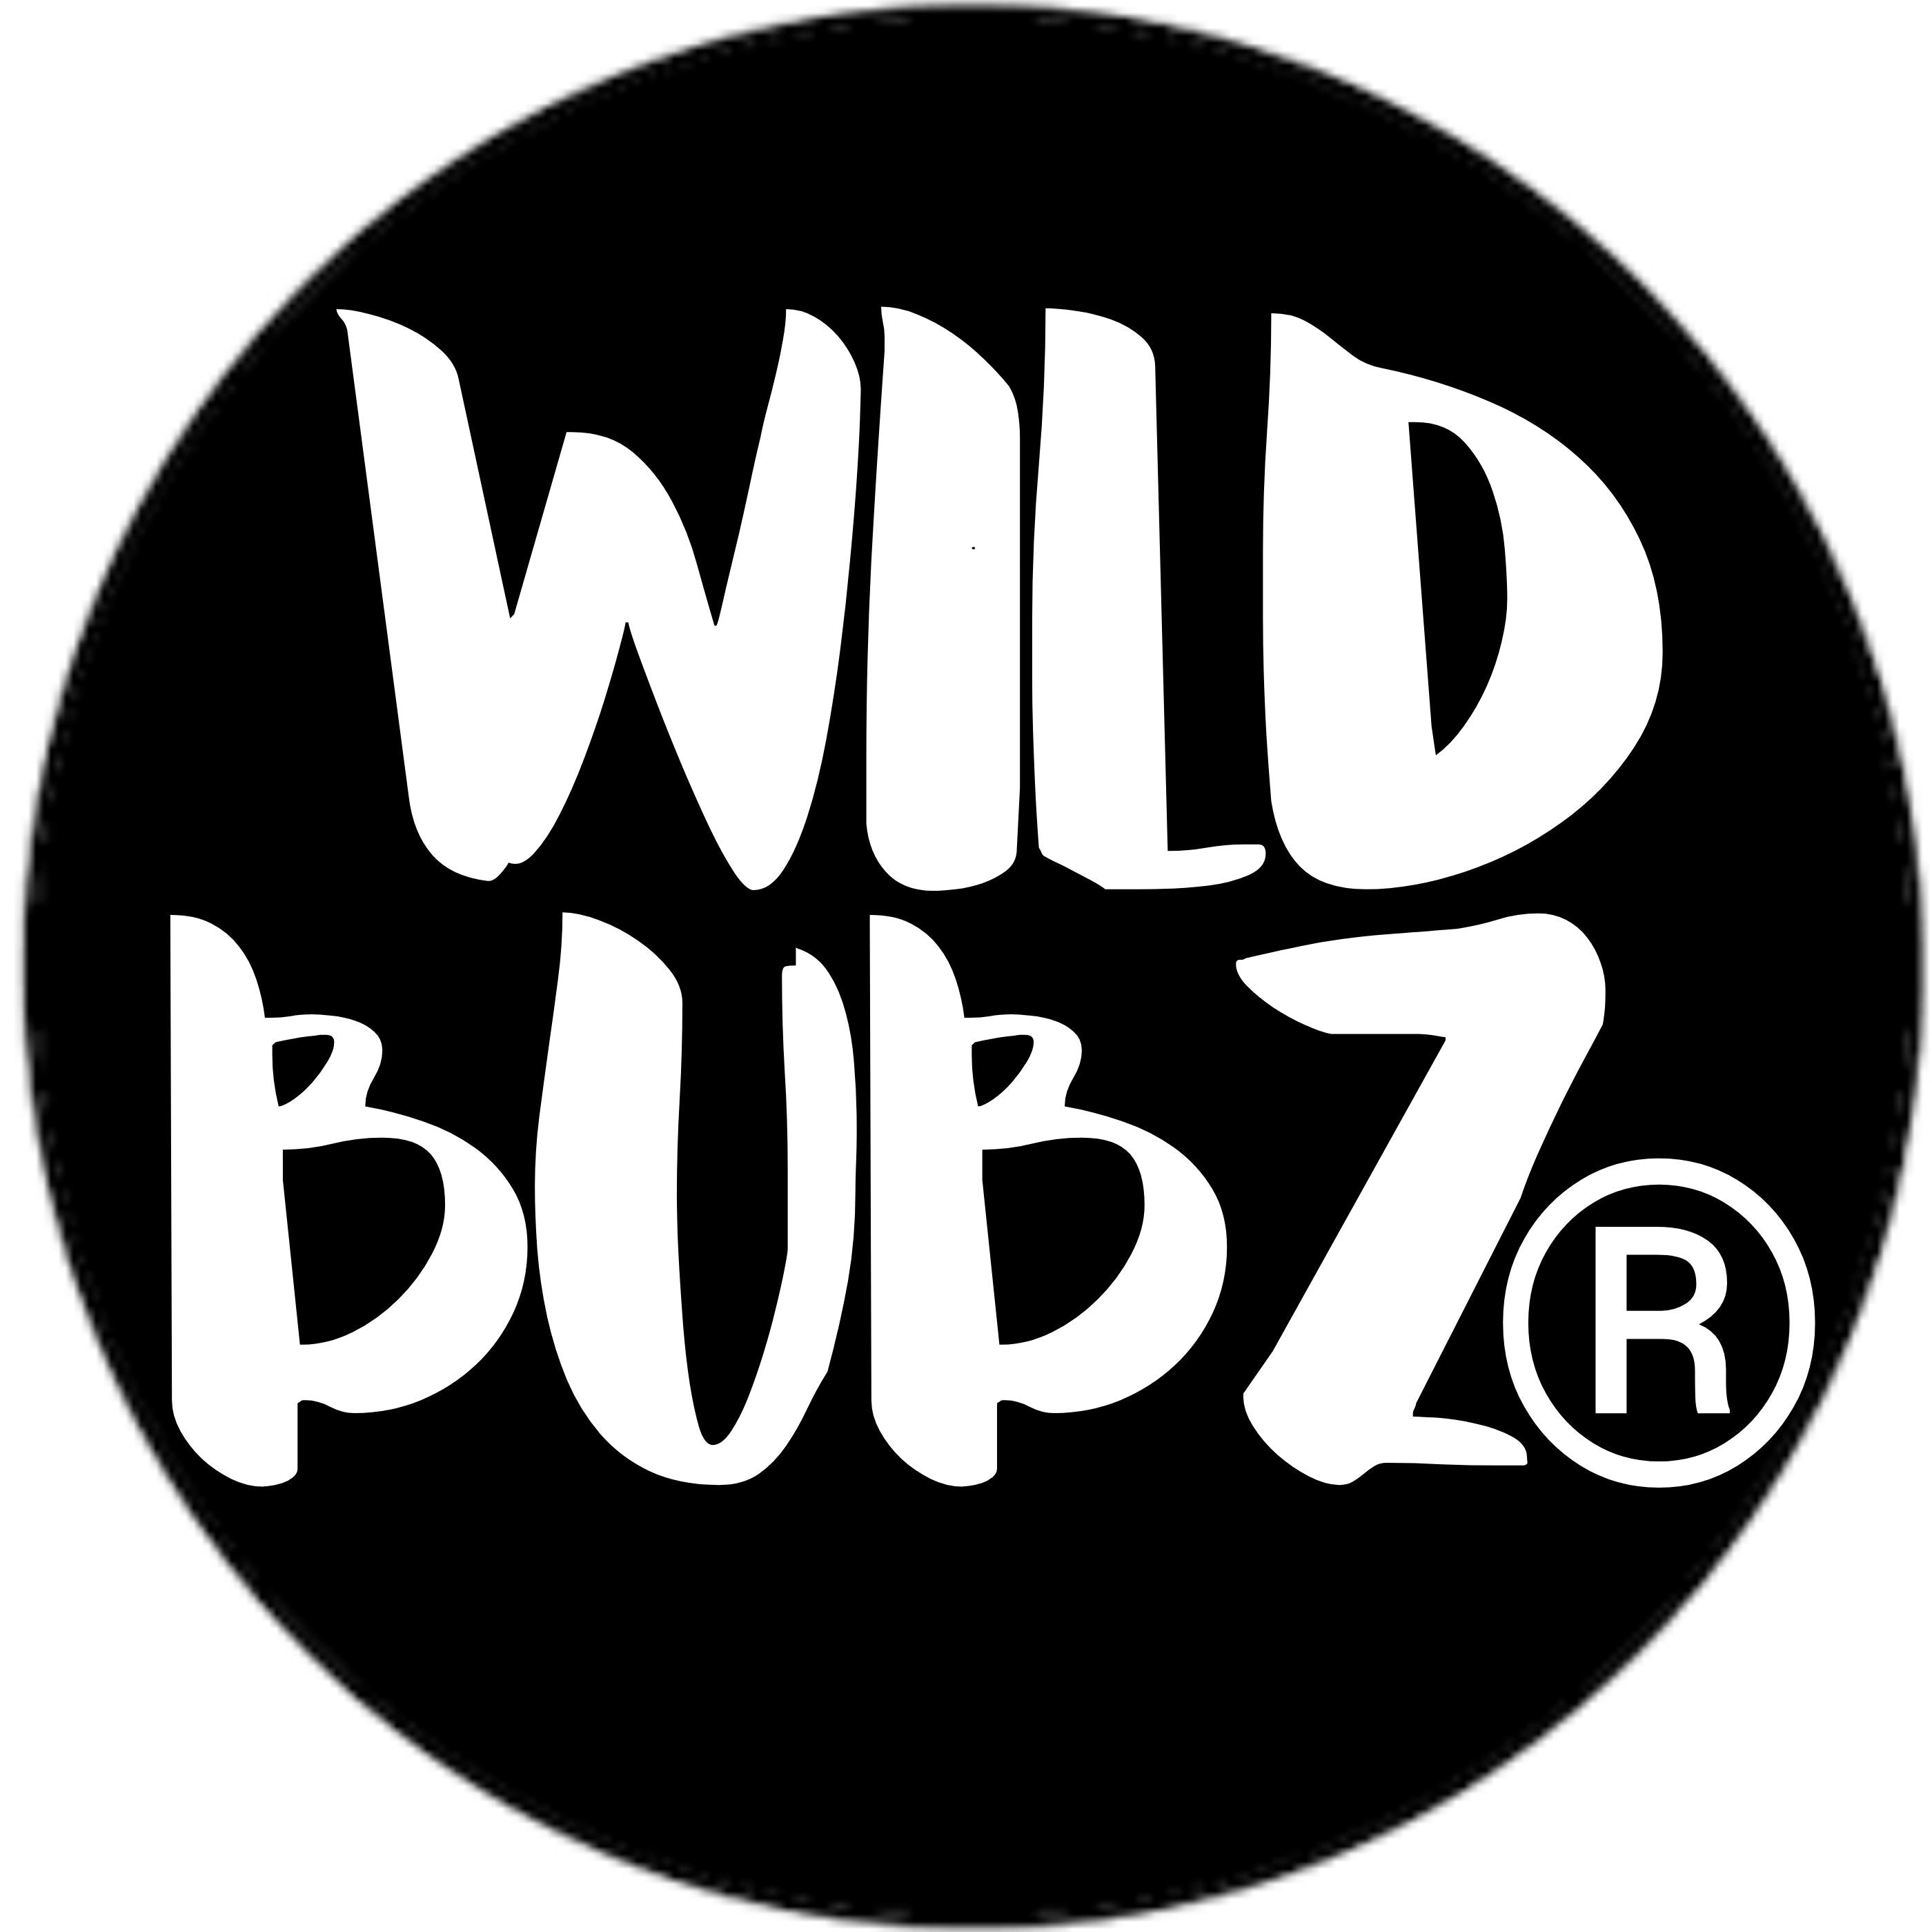 WILD BUBZ® Monochrome Cloud 9 Toys ★★★★★